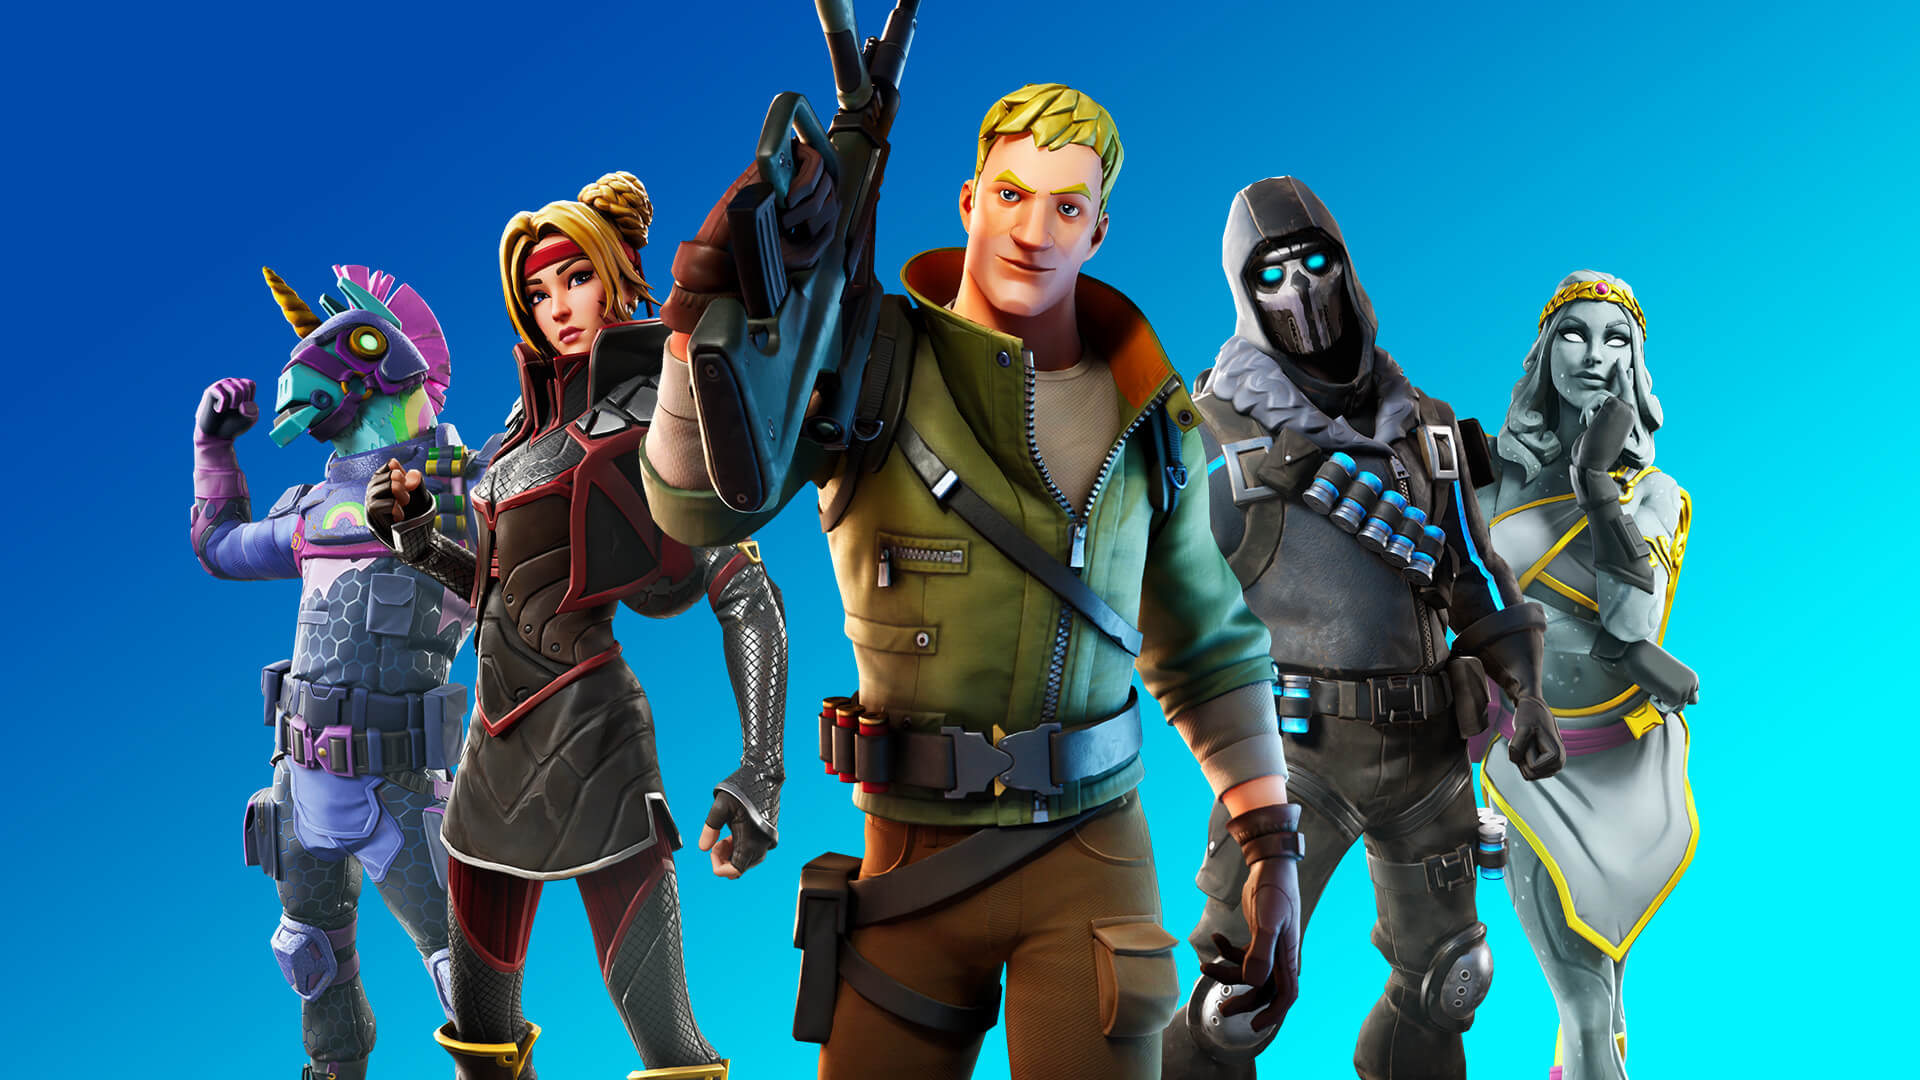 Fortnite podría estar preparando una colaboración con Birds of Prey